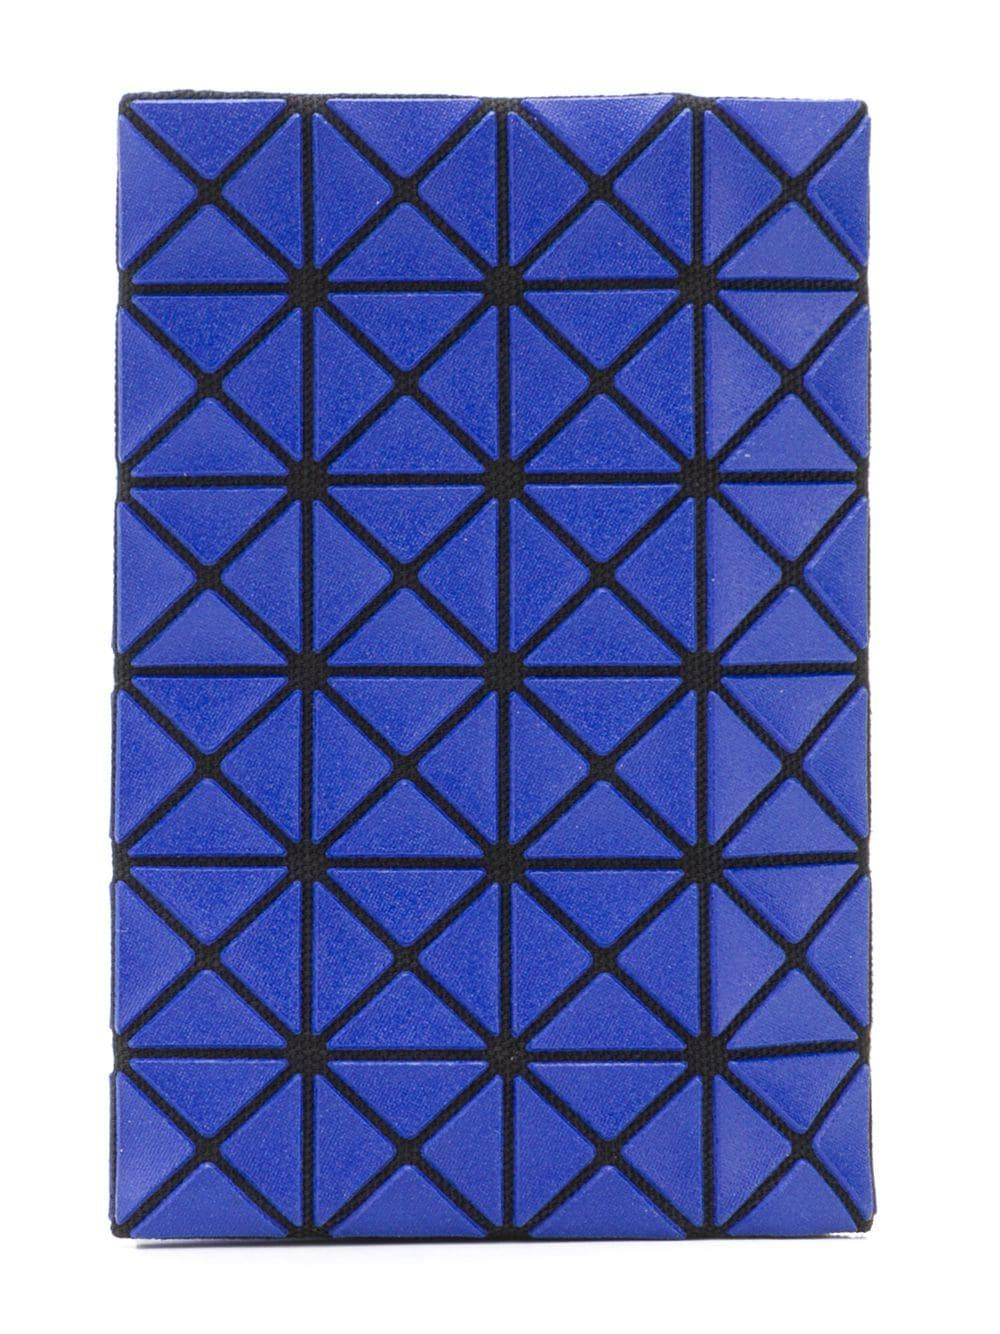 60d51f684b Bao Bao Issey Miyake - Blue Oyster Bifold Wallet for Men - Lyst. View  fullscreen